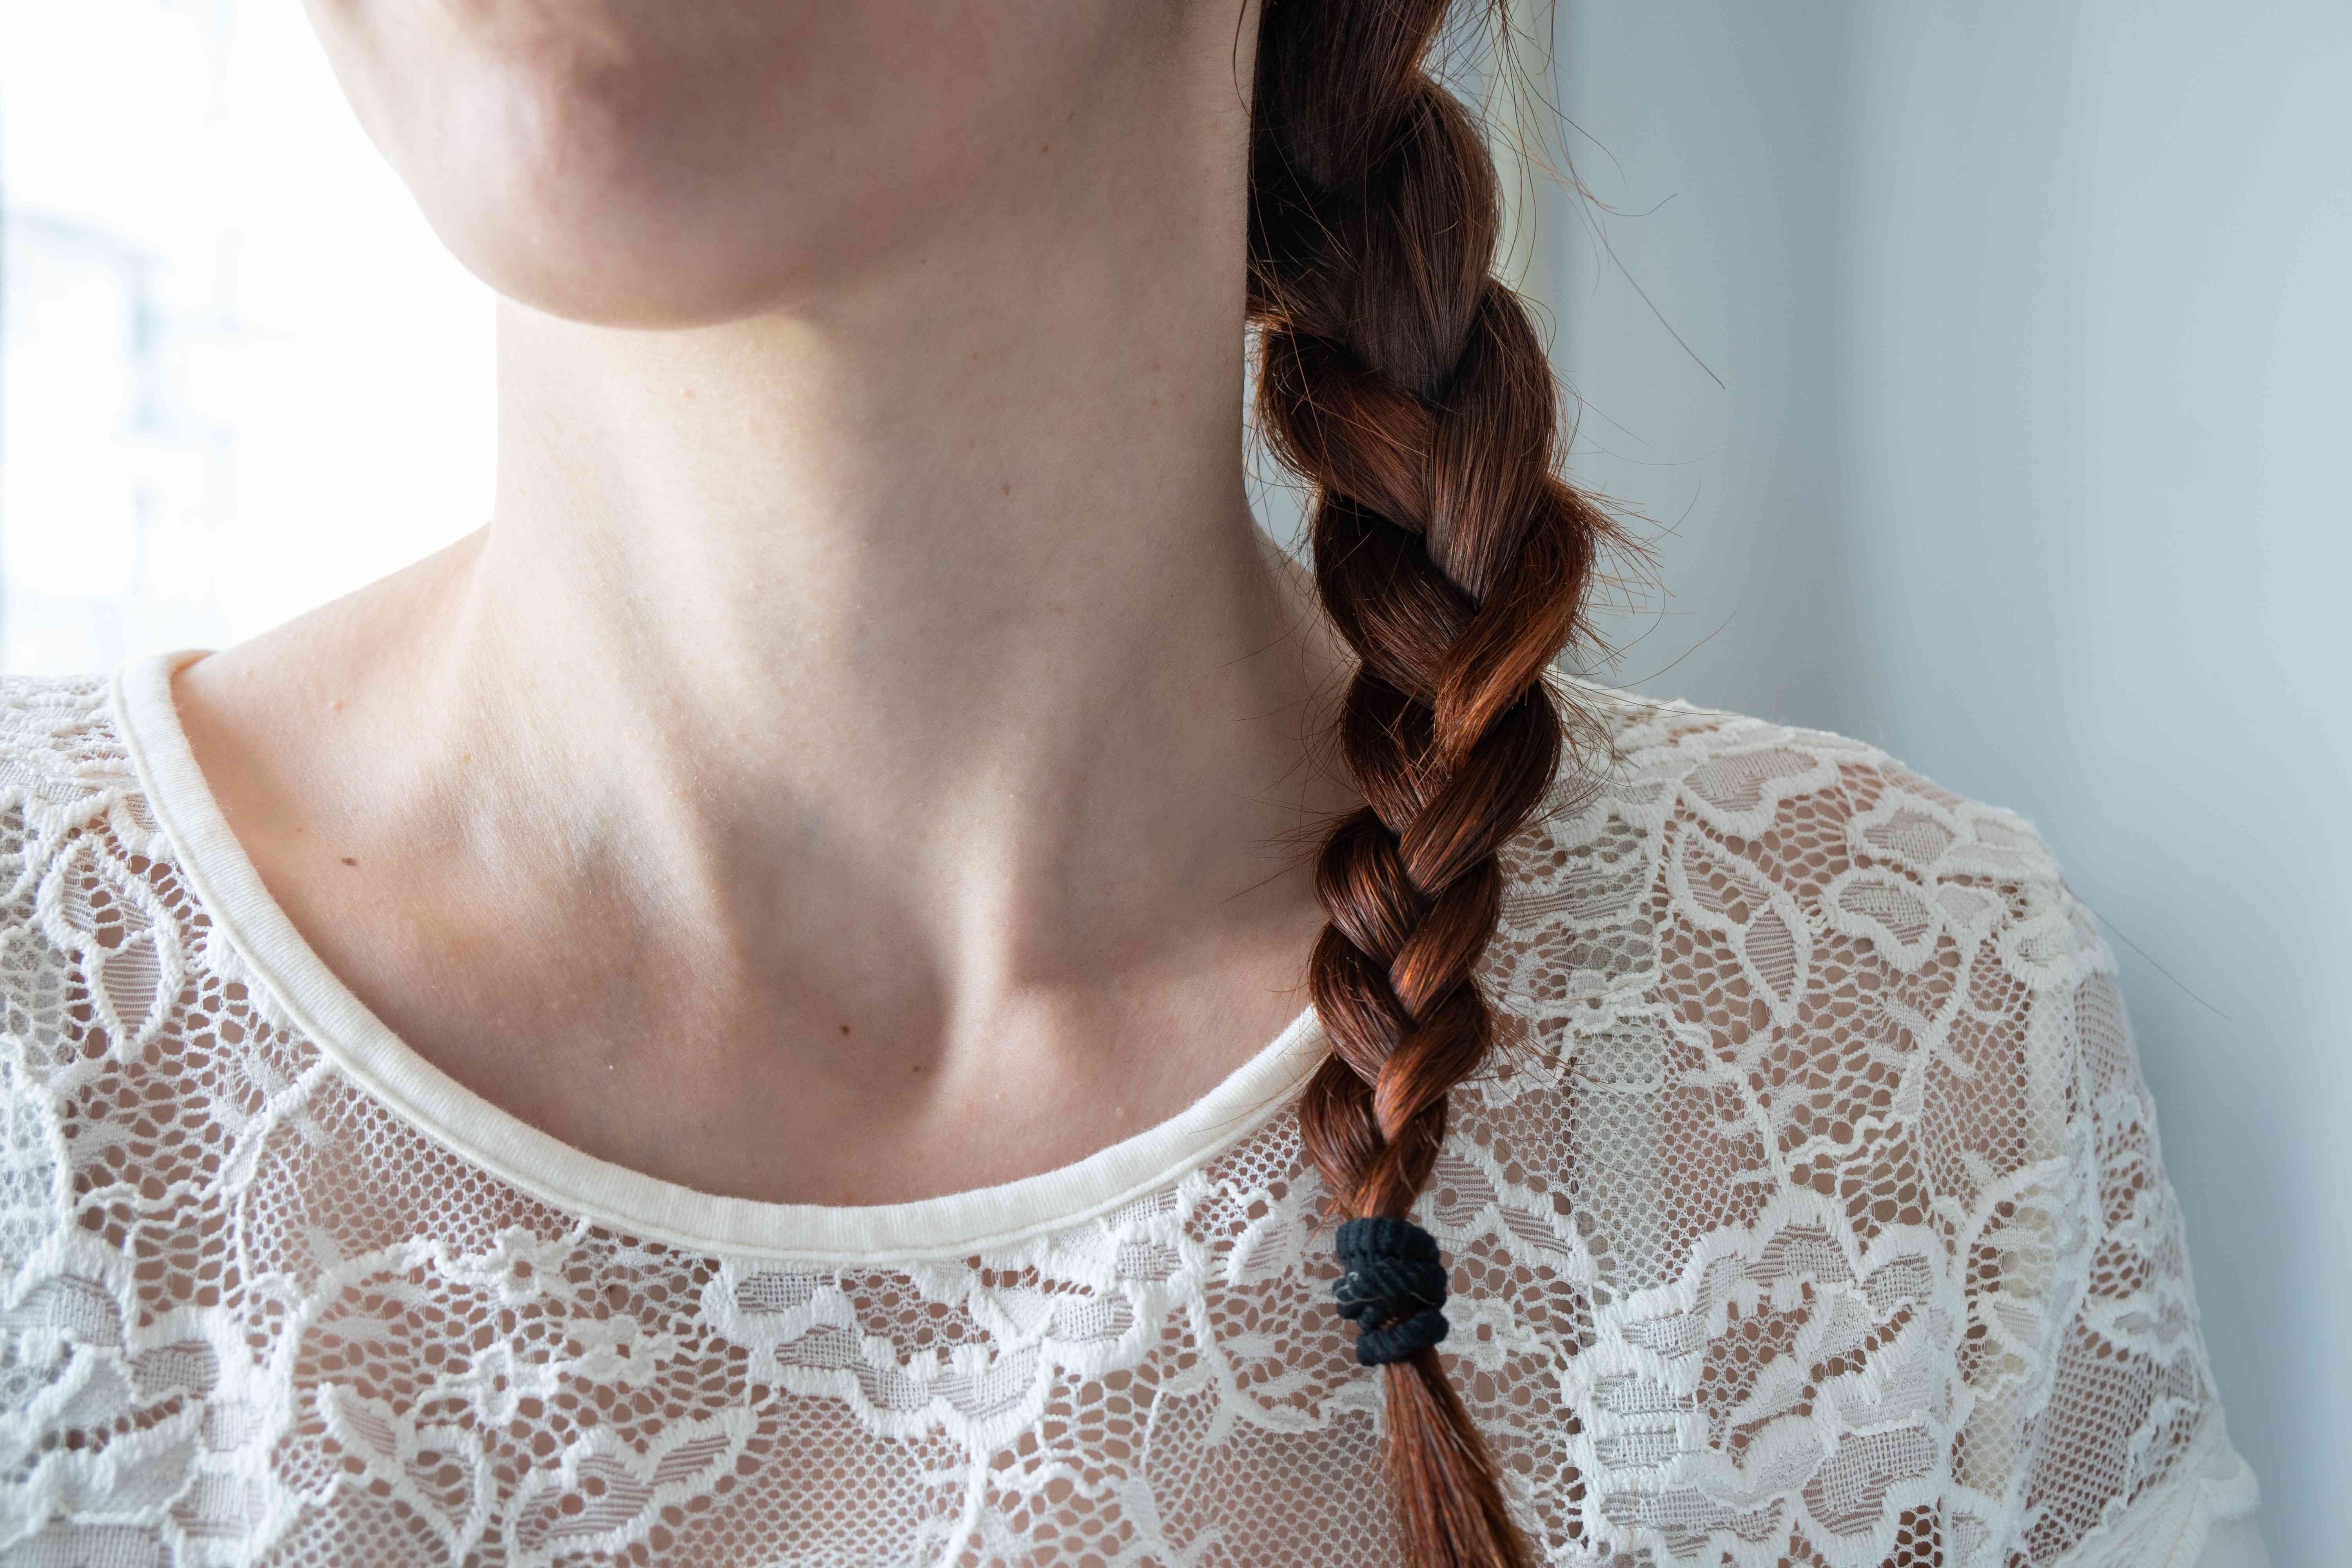 close shot of woman's neck with long red braid in white lace top